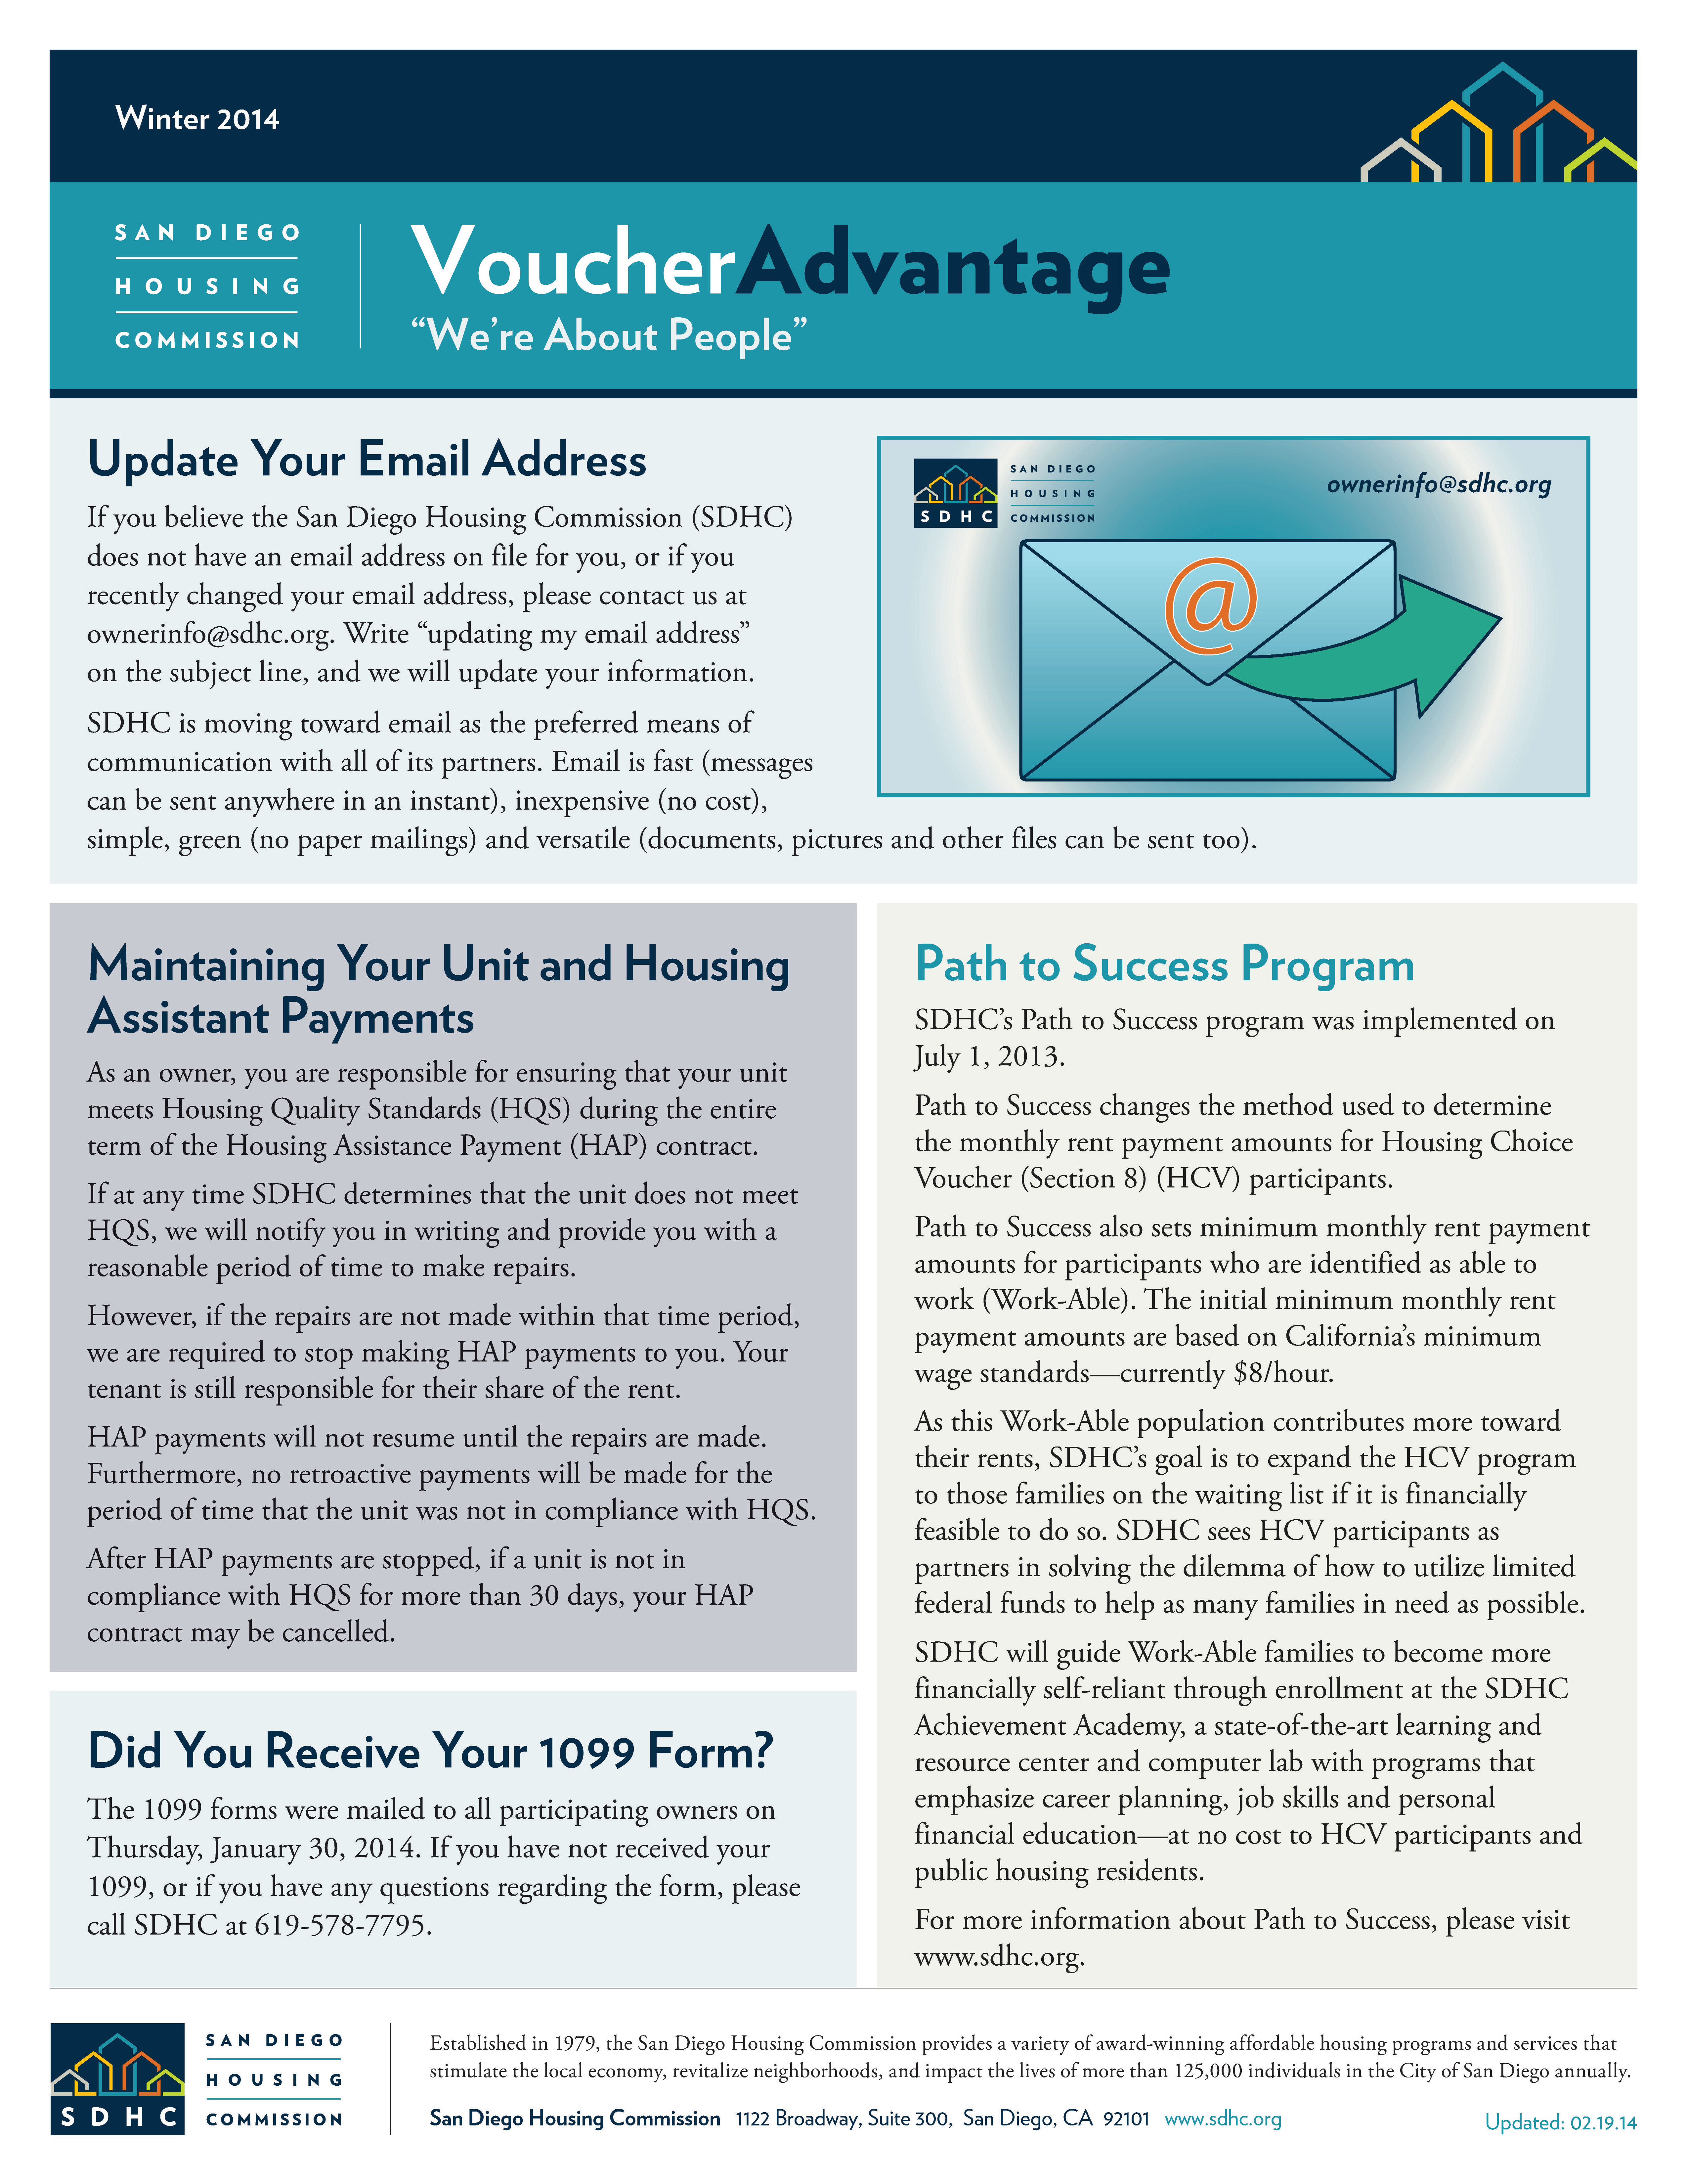 Voucher Advantage_winter 2014